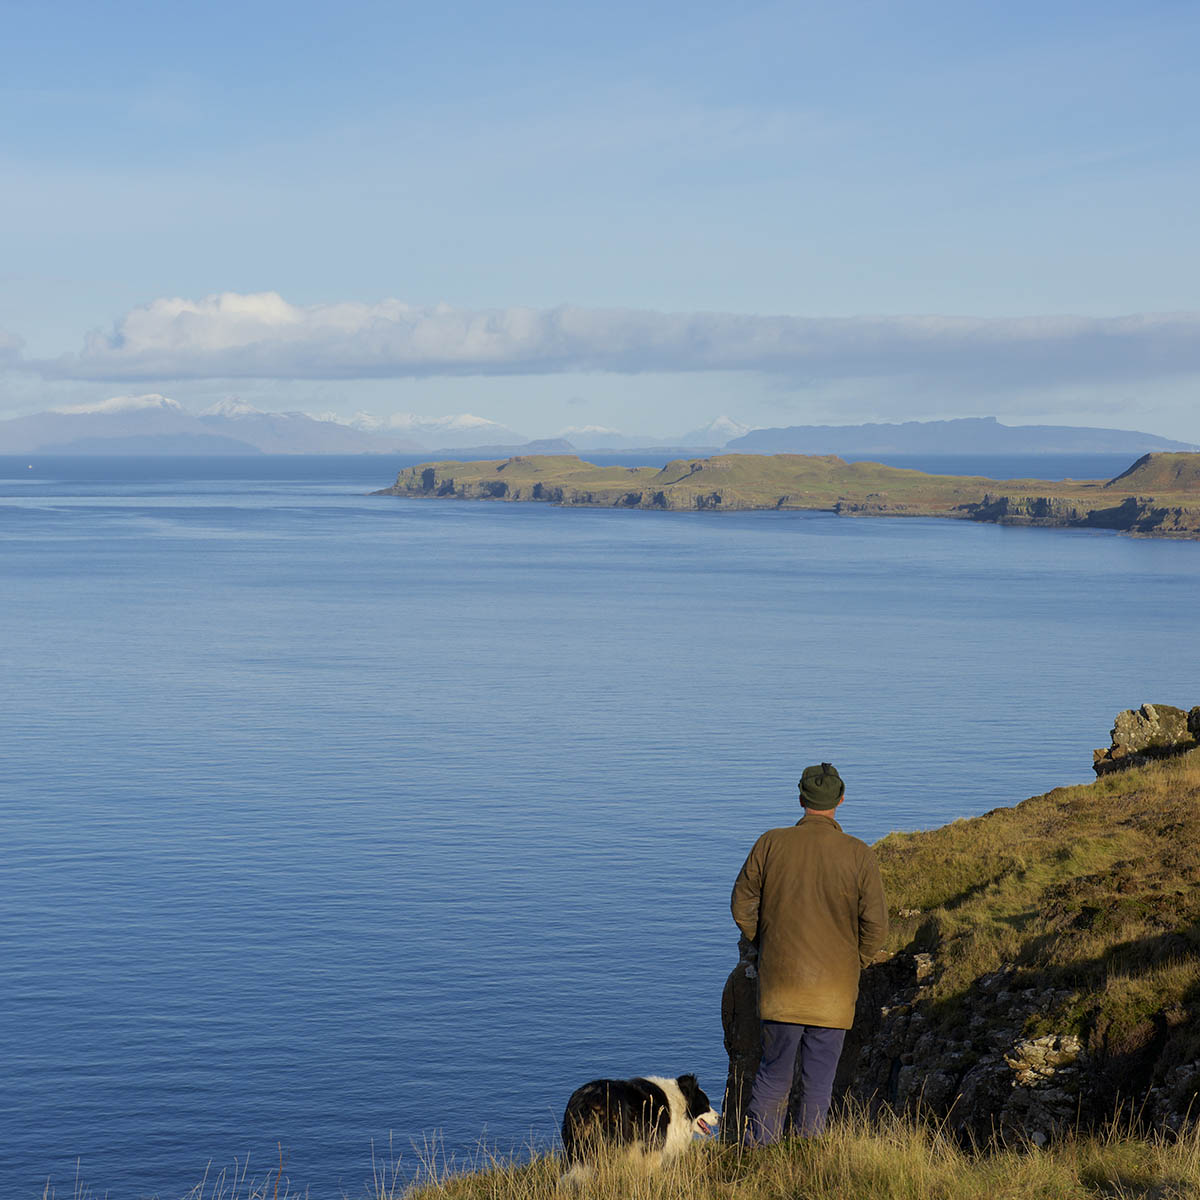 Treshnish Mull, self-catering cottages, one man and his dog